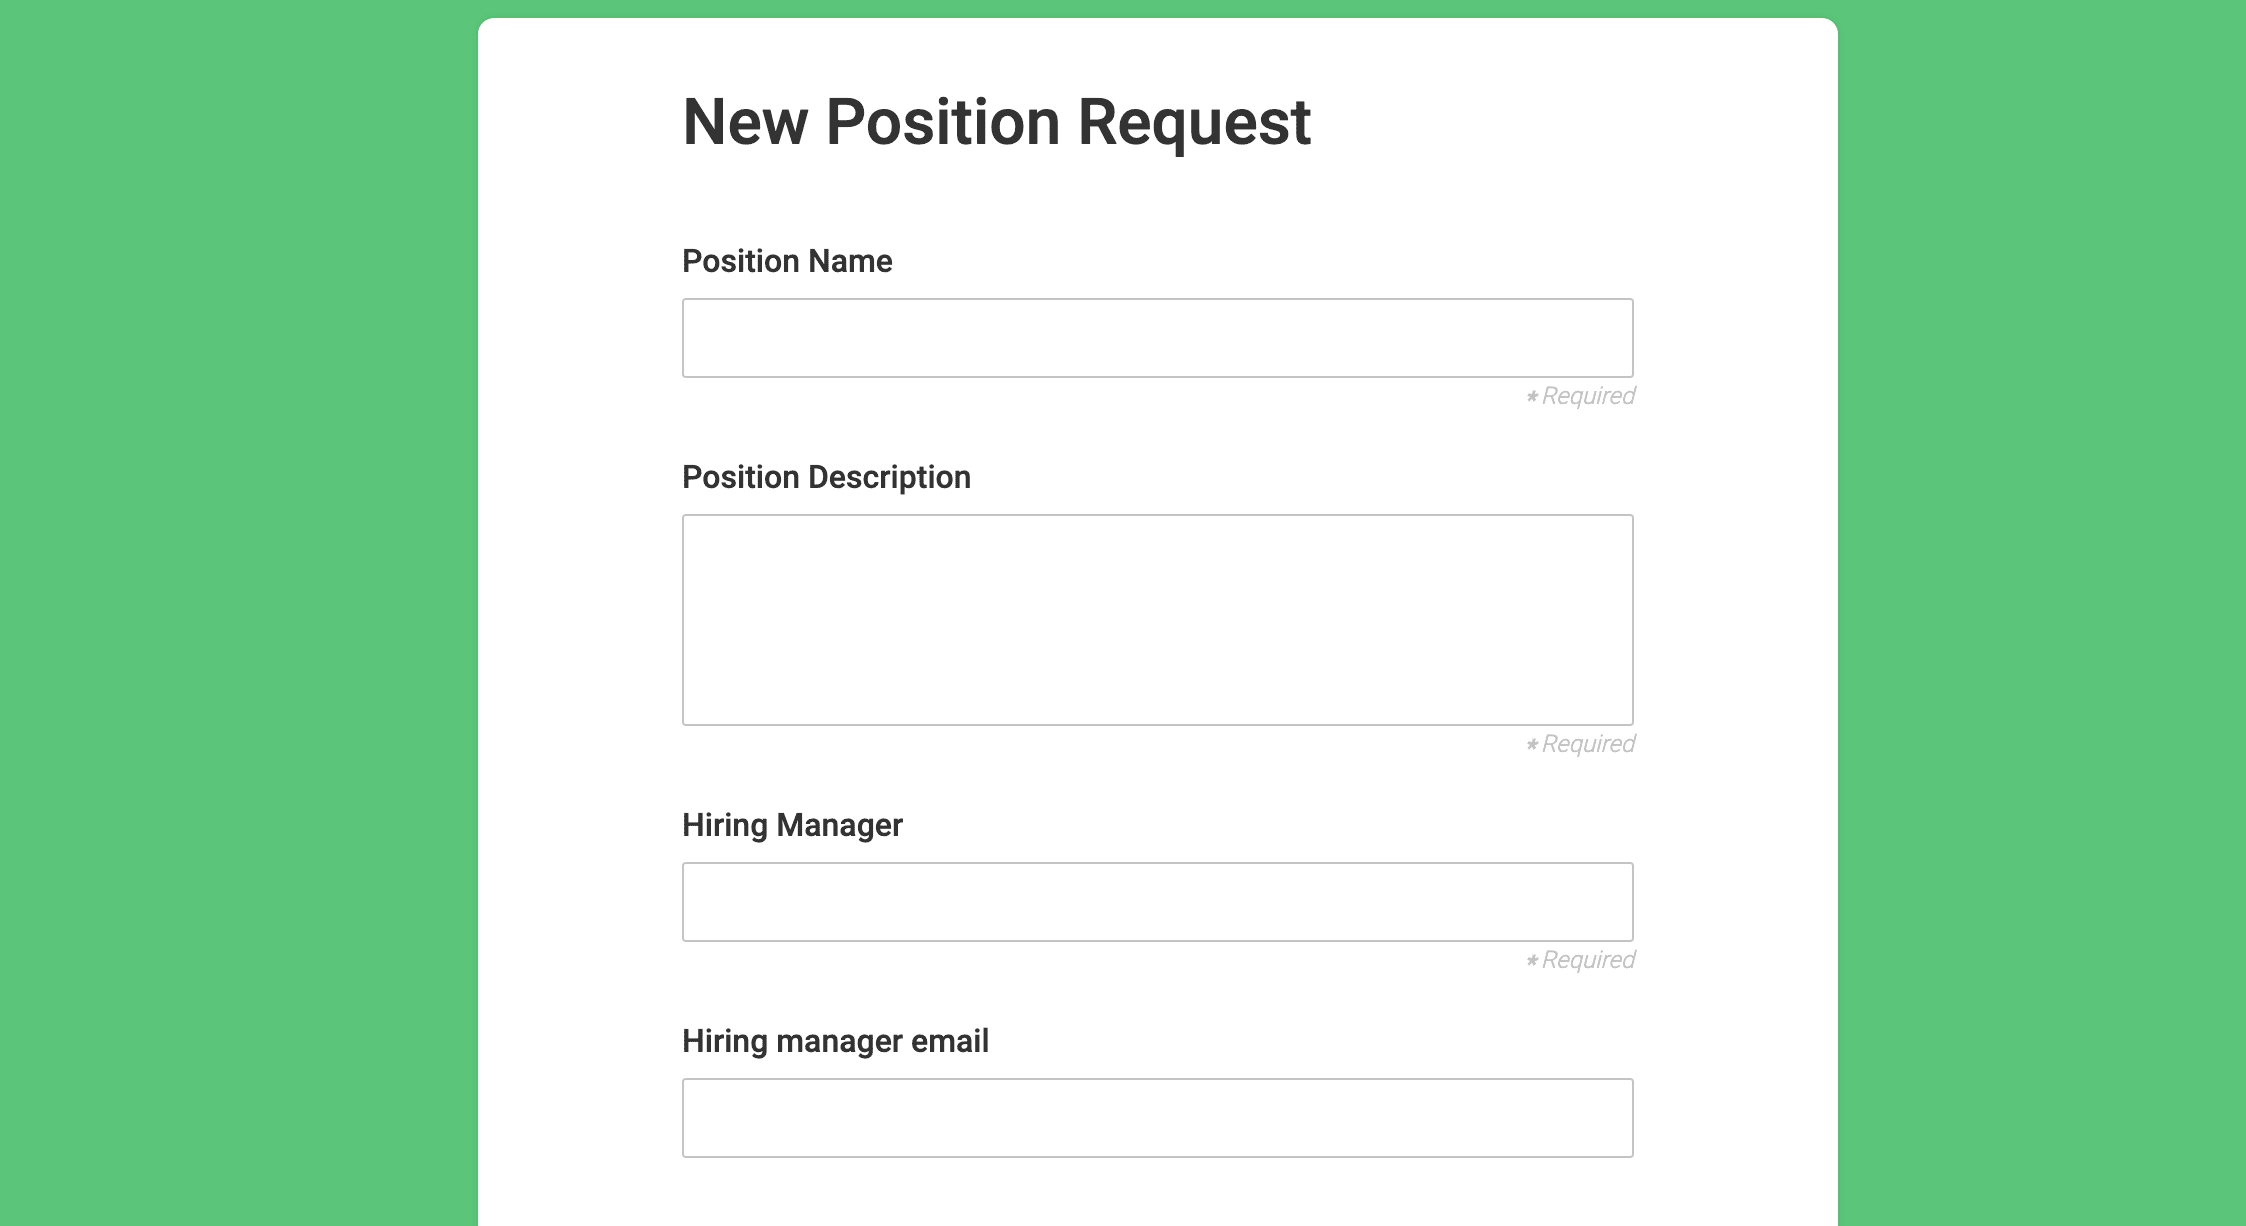 New Position Request